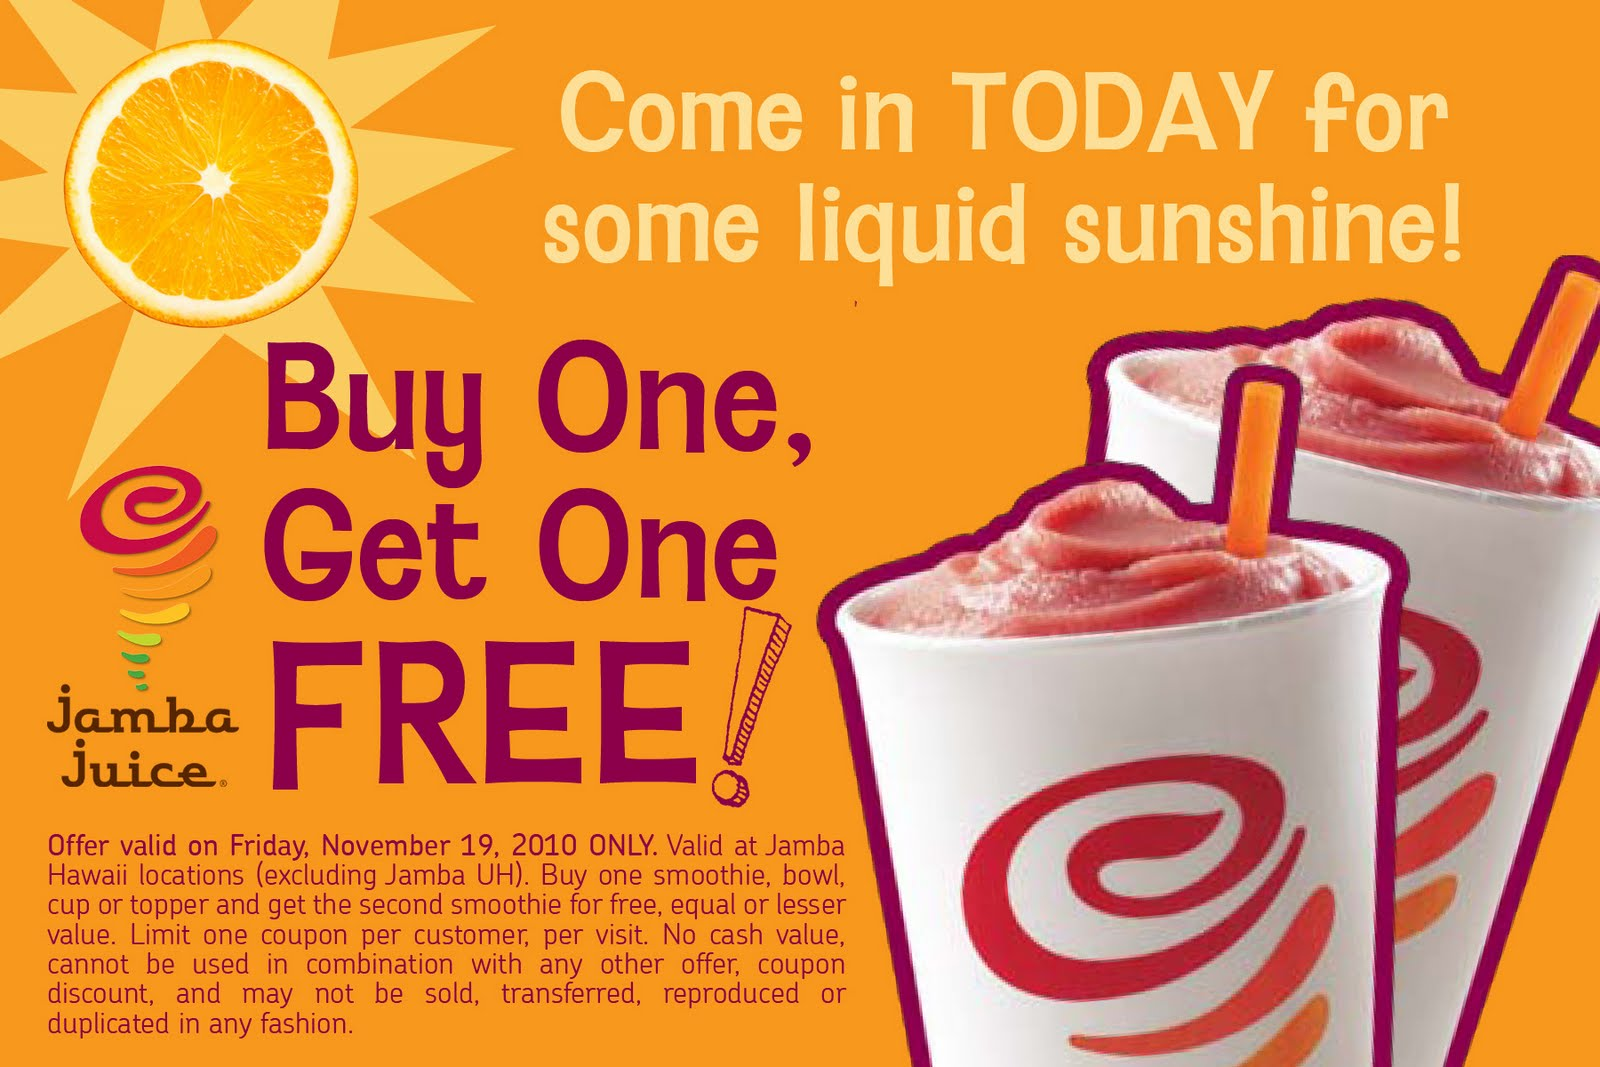 Jamba juice coupon code